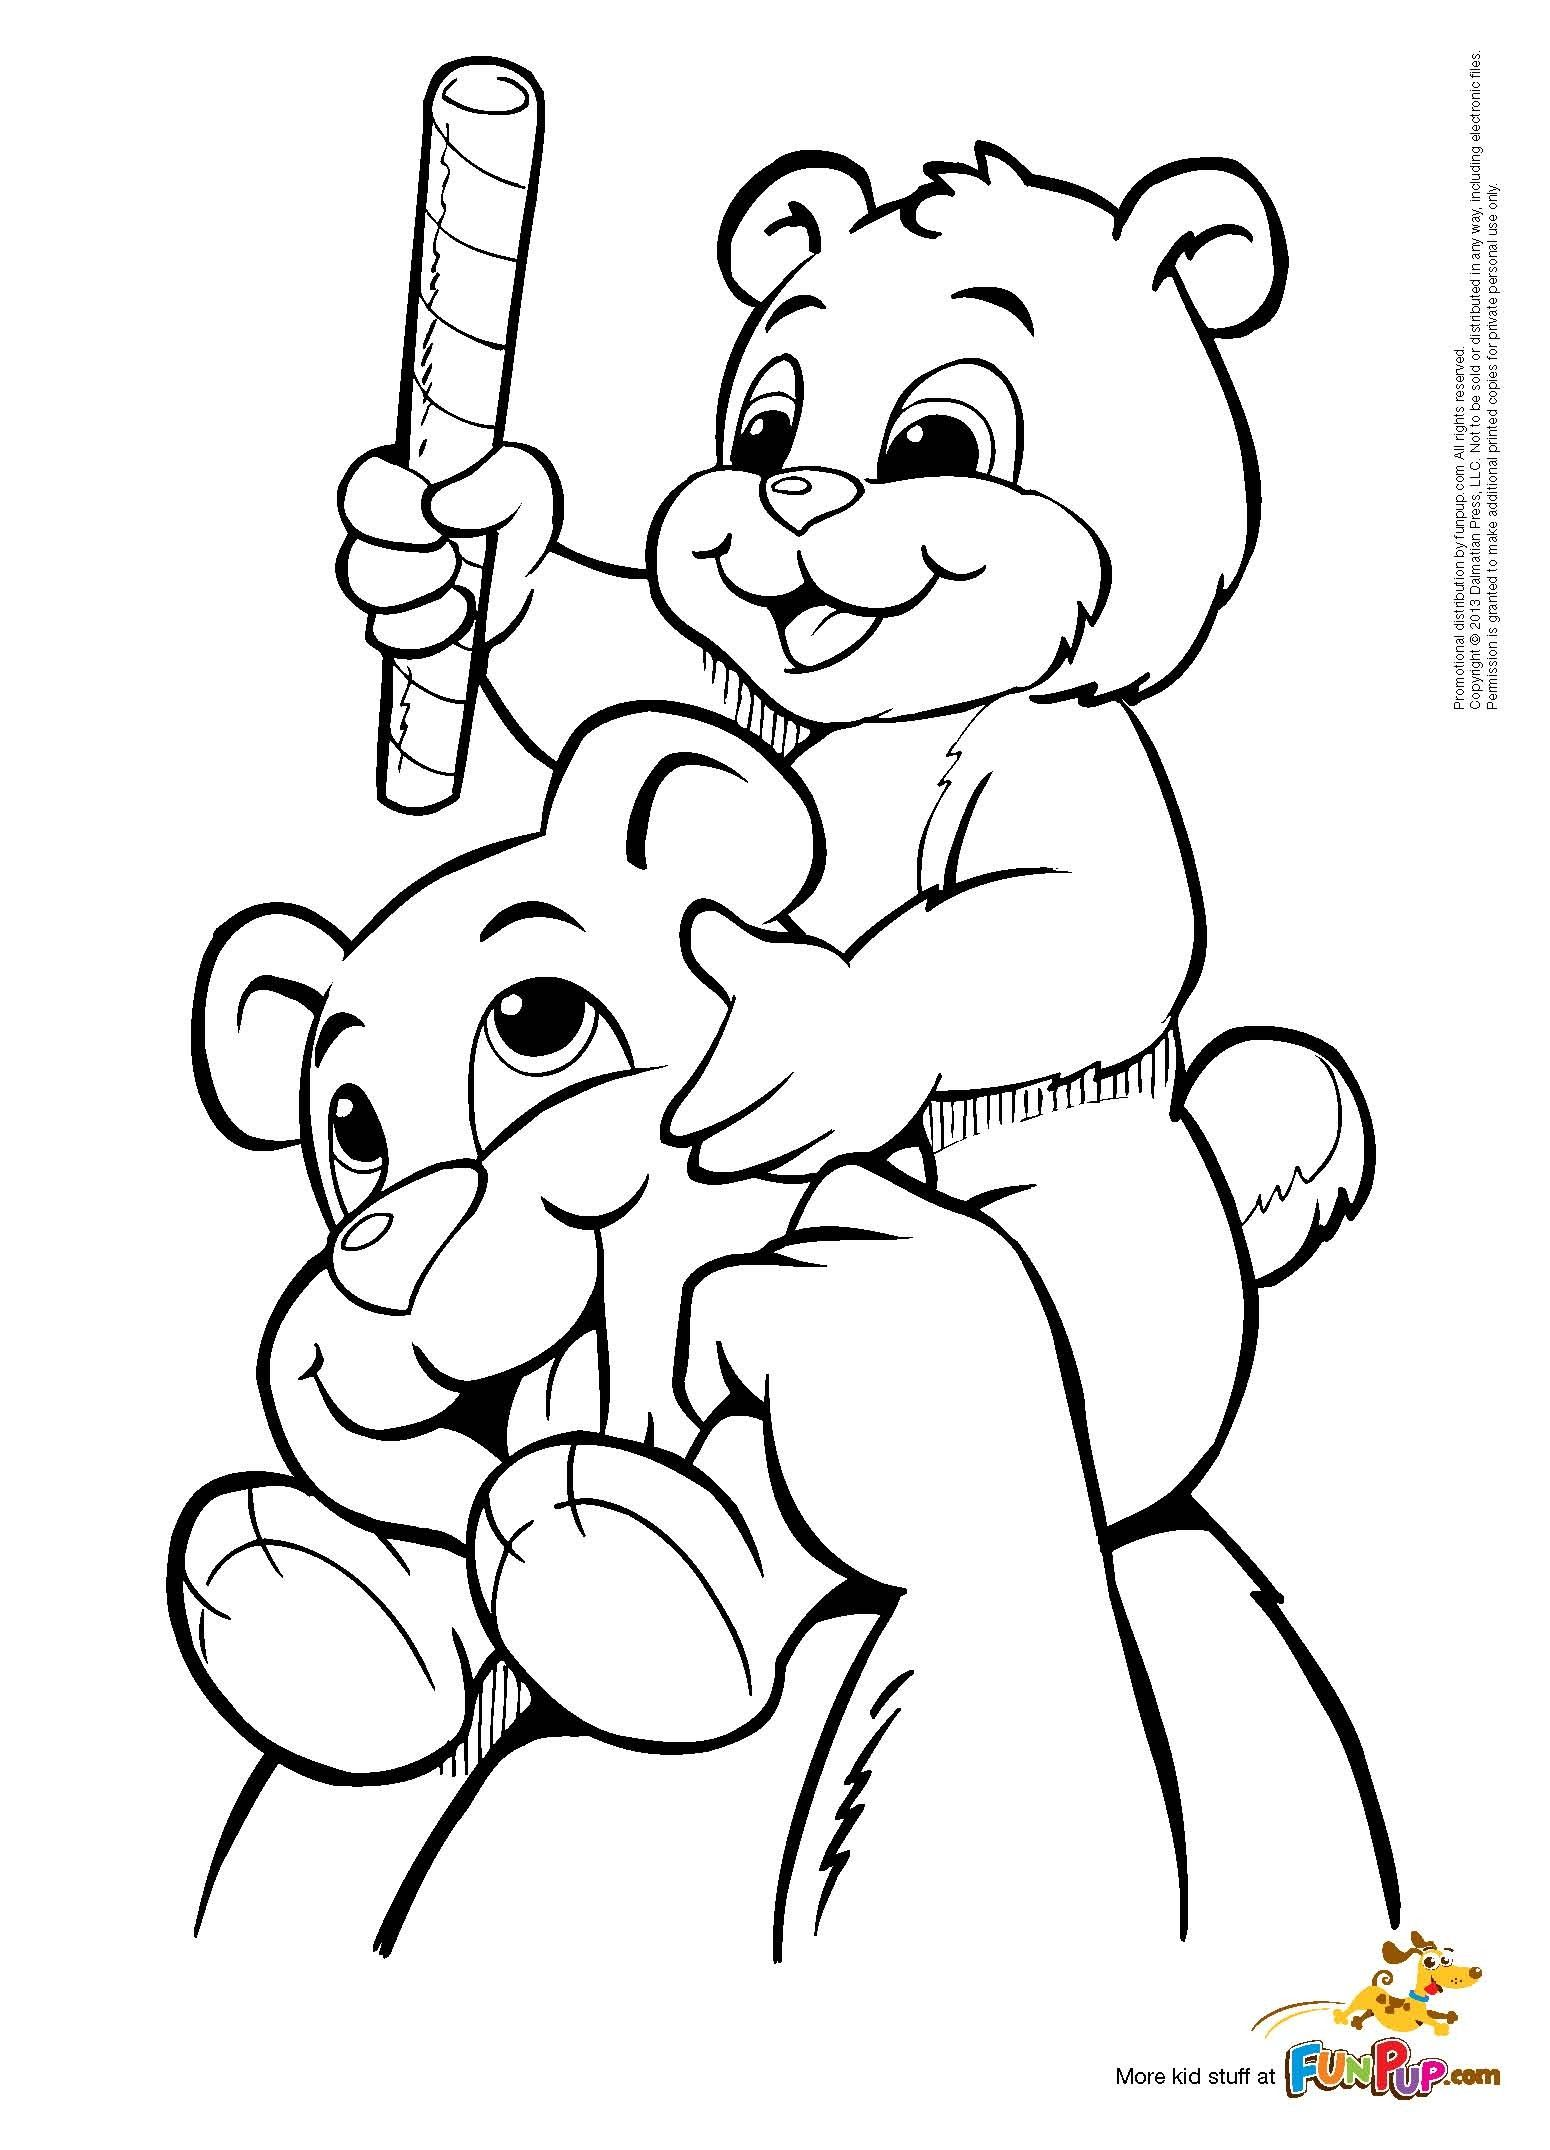 father u0026 son bear 0 00 coloring pages pinterest bears